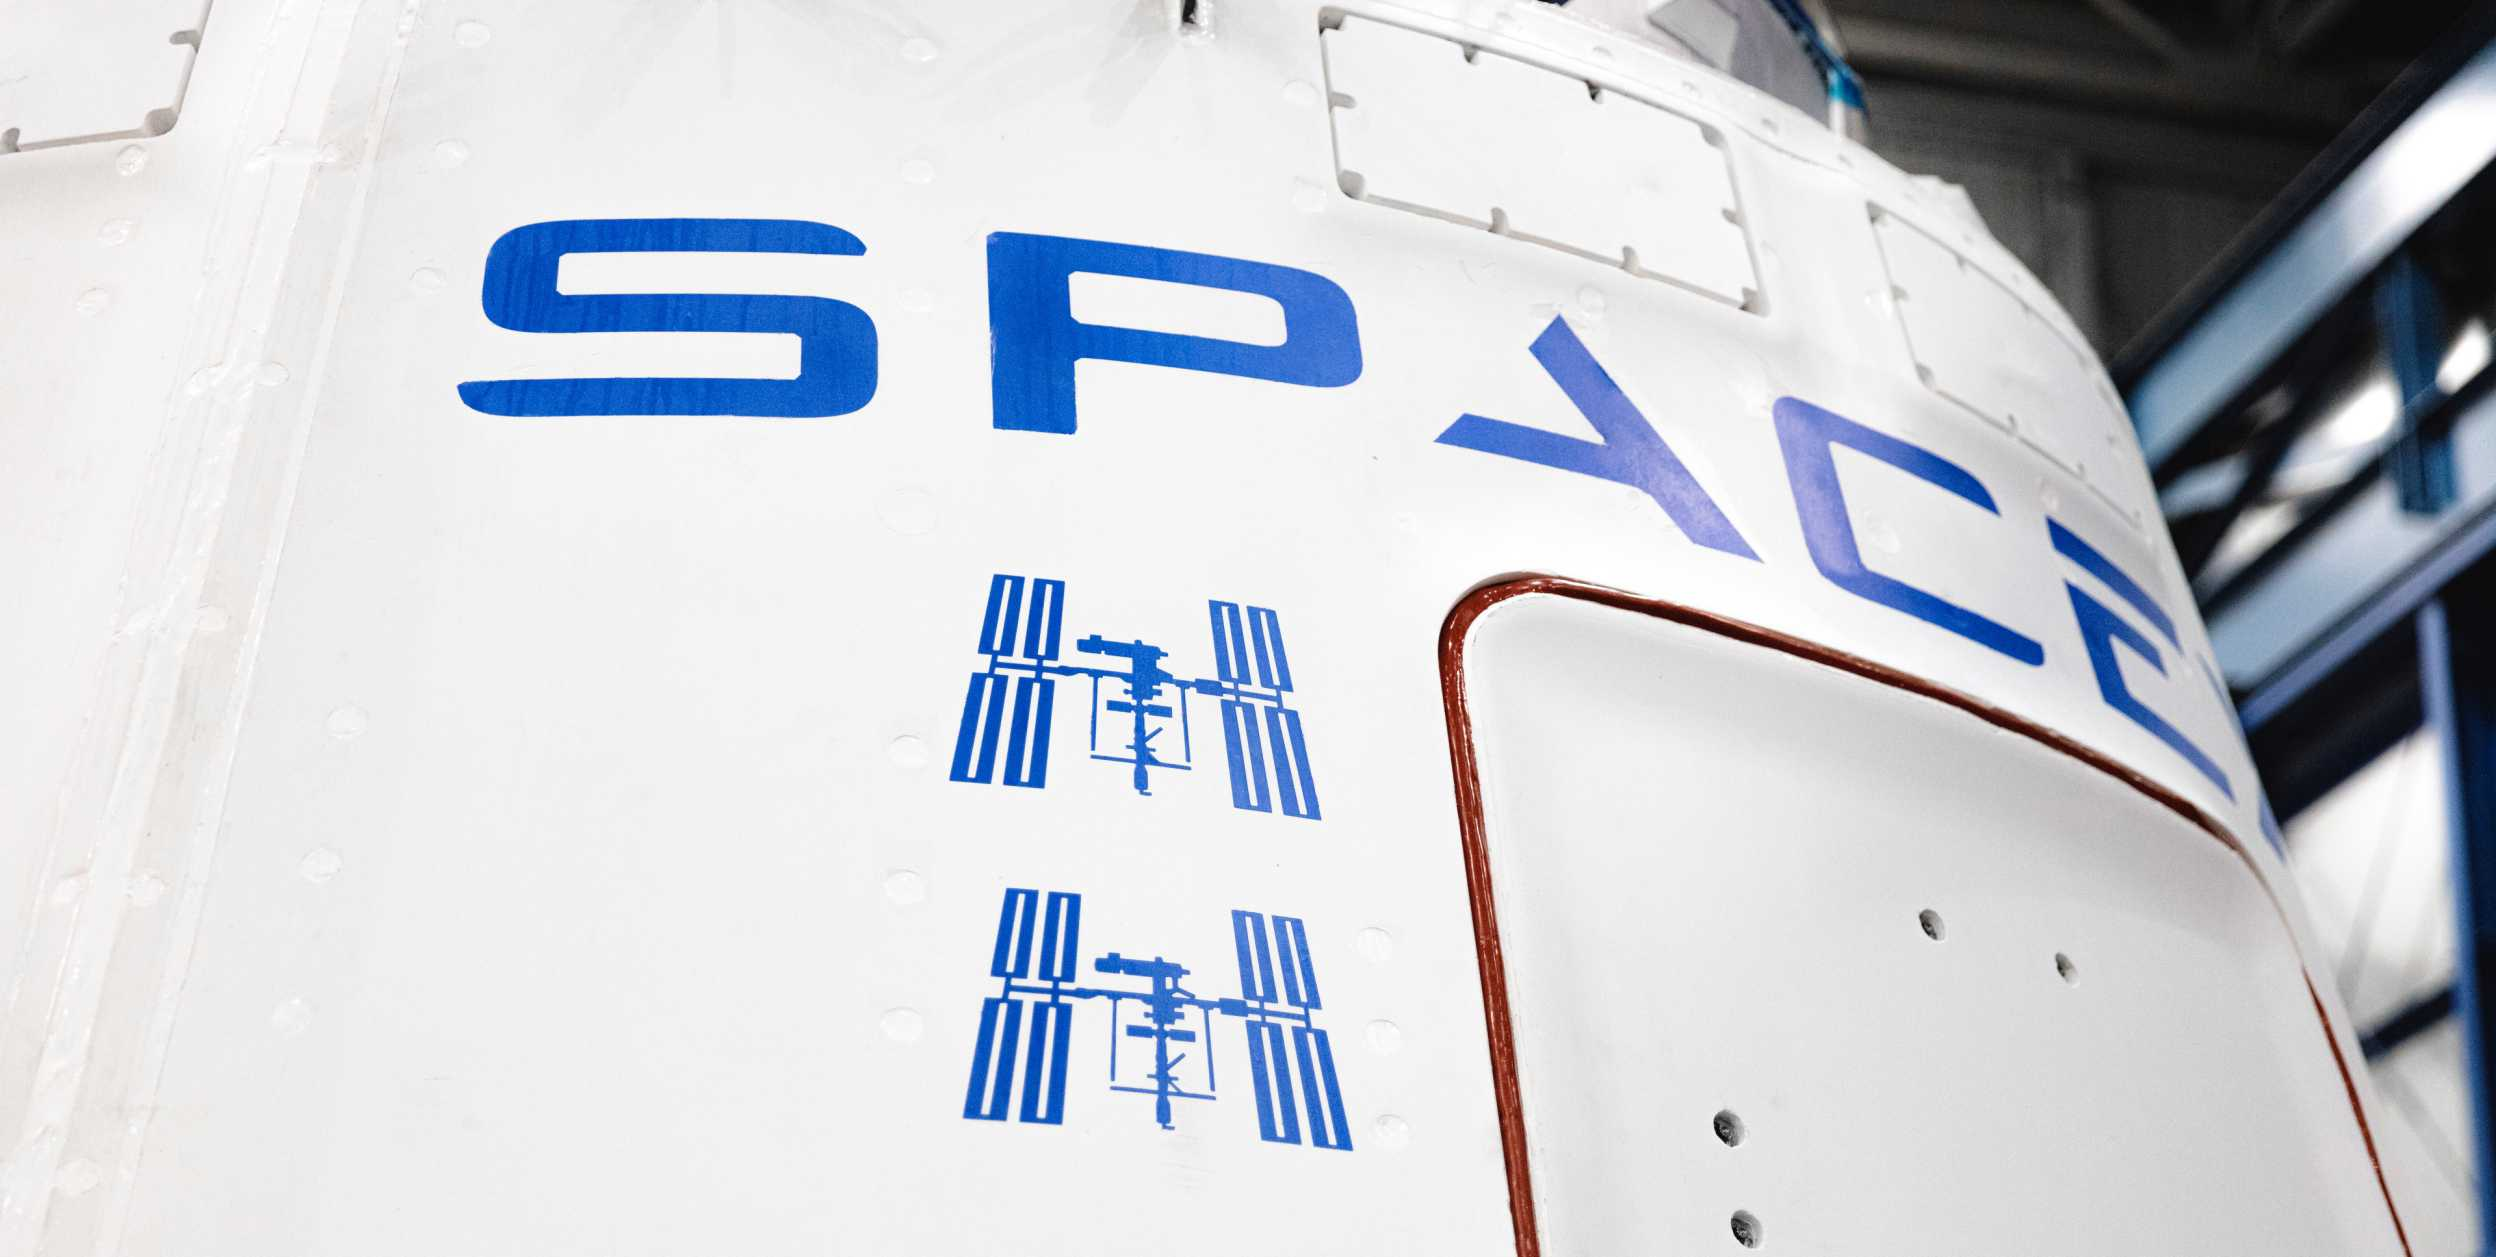 CRS-20 Cargo Dragon C112 Feb 2020 (SpaceX) 1 crop (c)